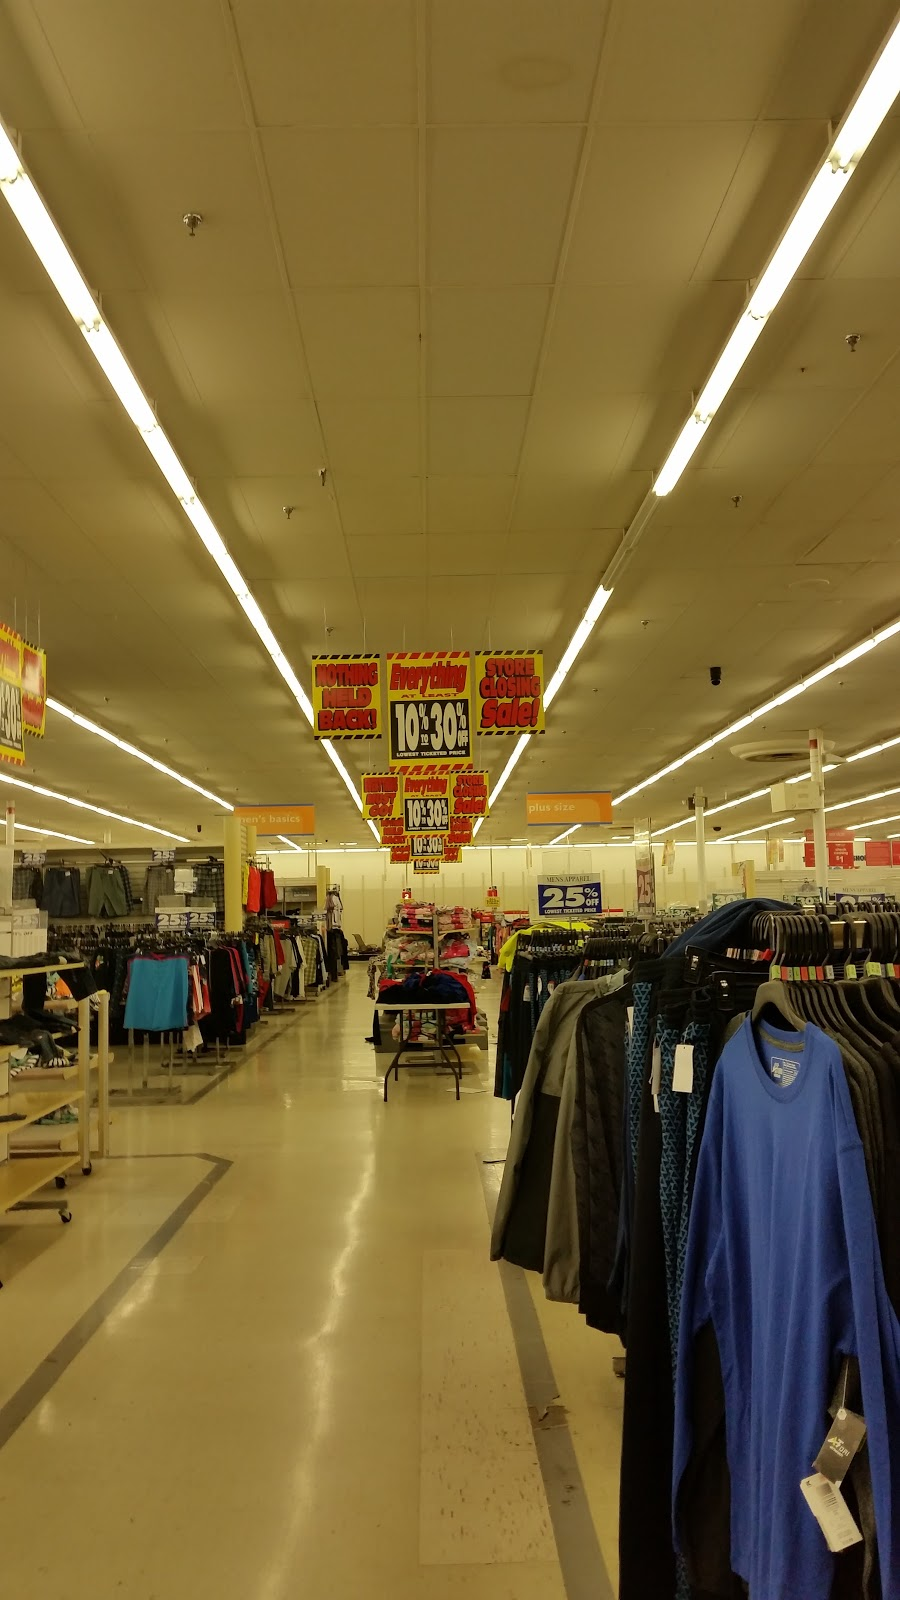 Back Aisle Of The Store With Sporting Goods